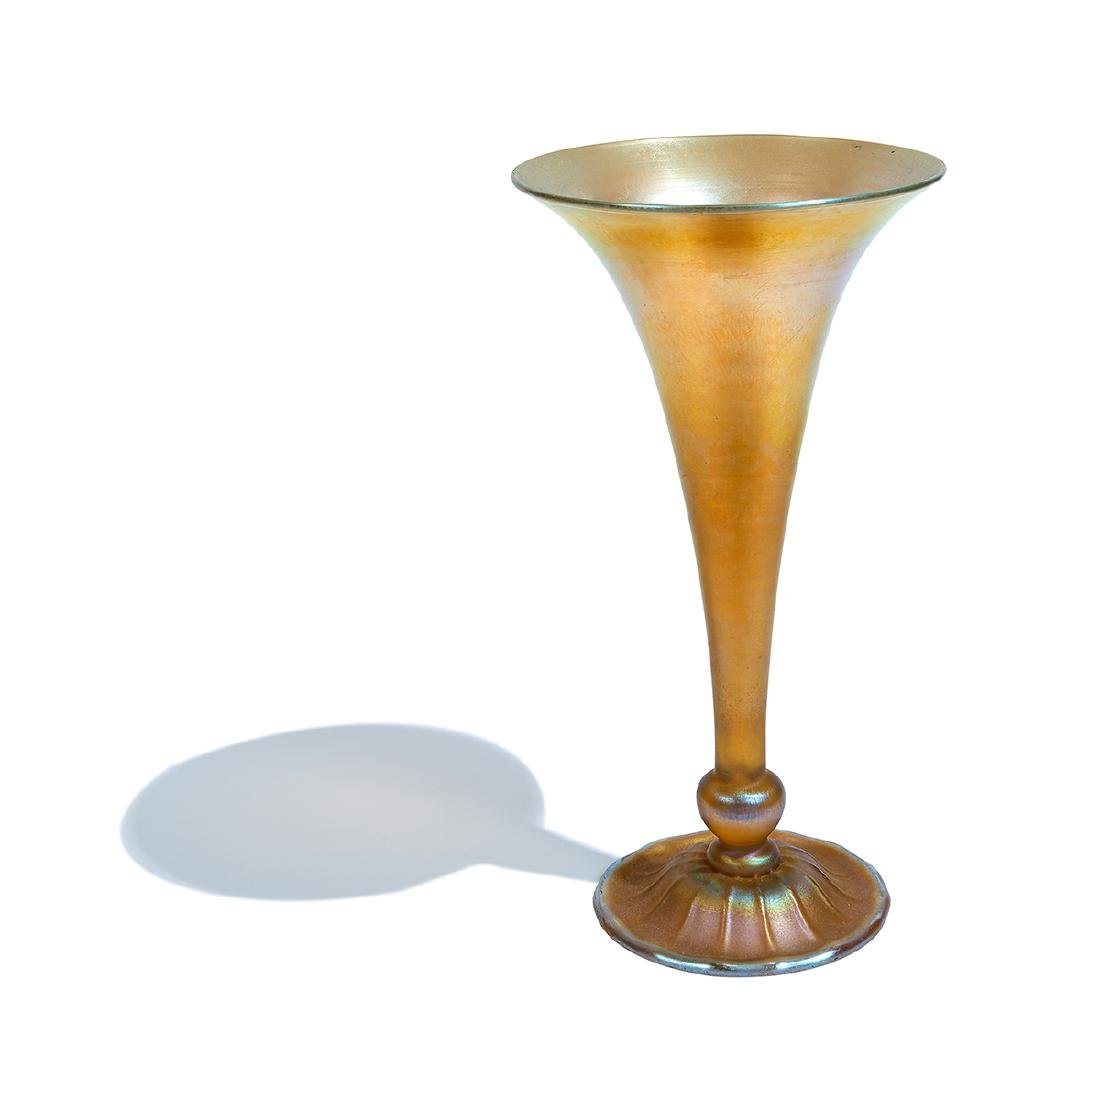 Louis C. Tiffany, Gold Favrile Glass Trumpet Vase